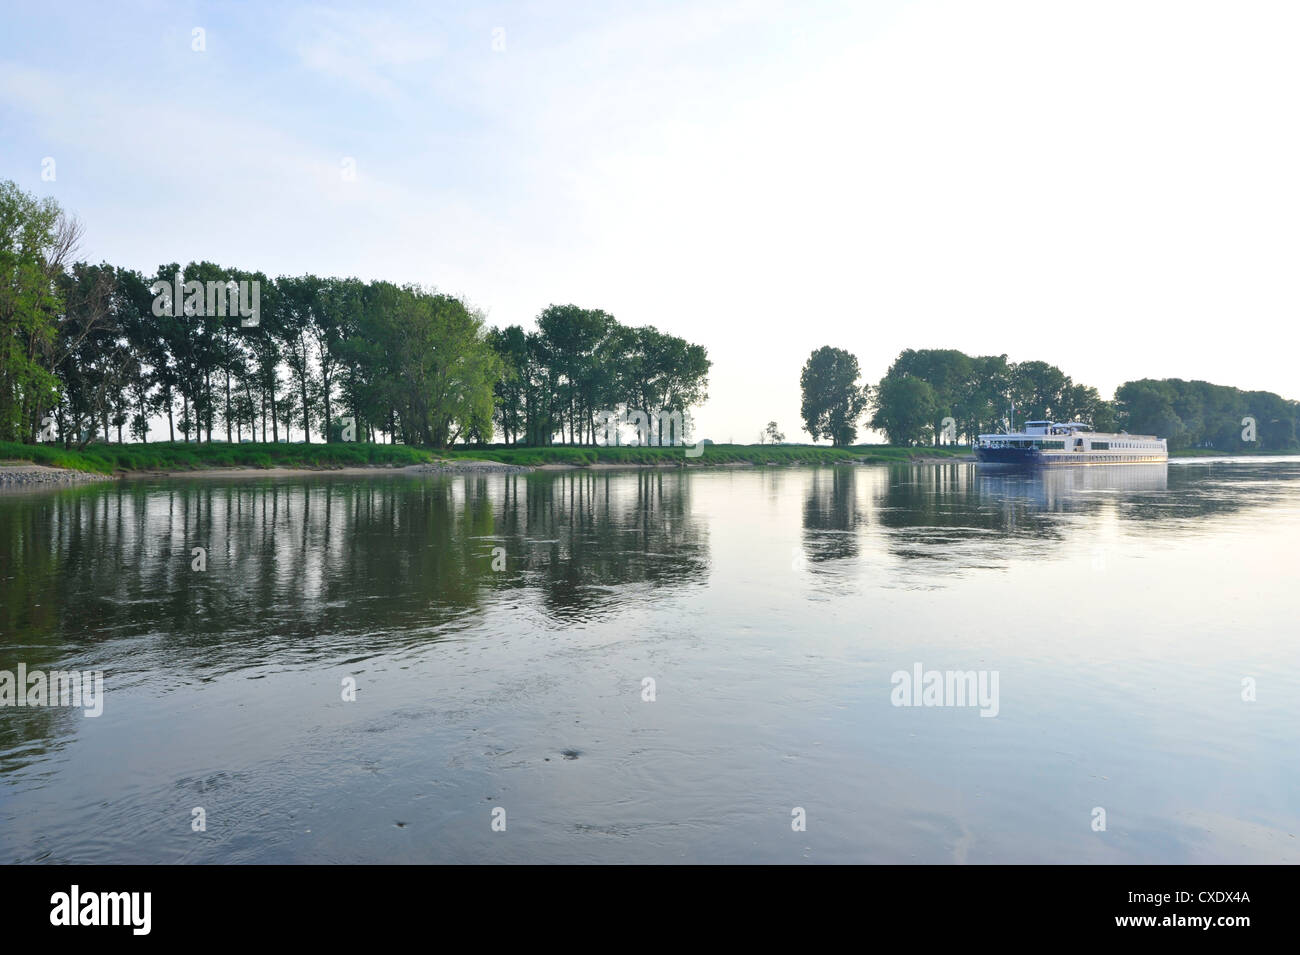 Cruise ship on the Elbe at Elster, Saxony-Anhalt, Germany, Europe - Stock Image